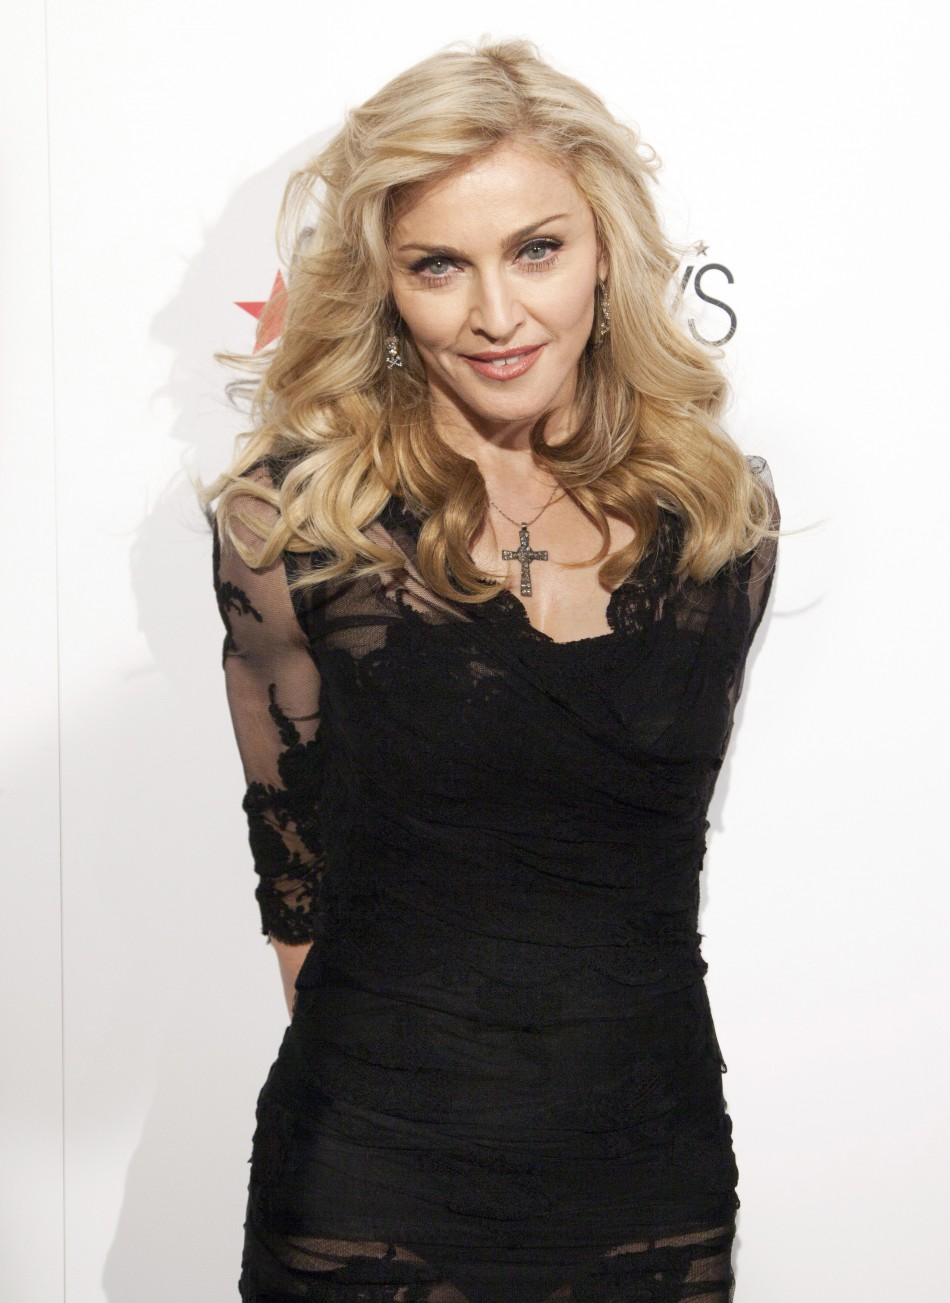 Madonna at the launch of her perfume 'Truth or Dare'